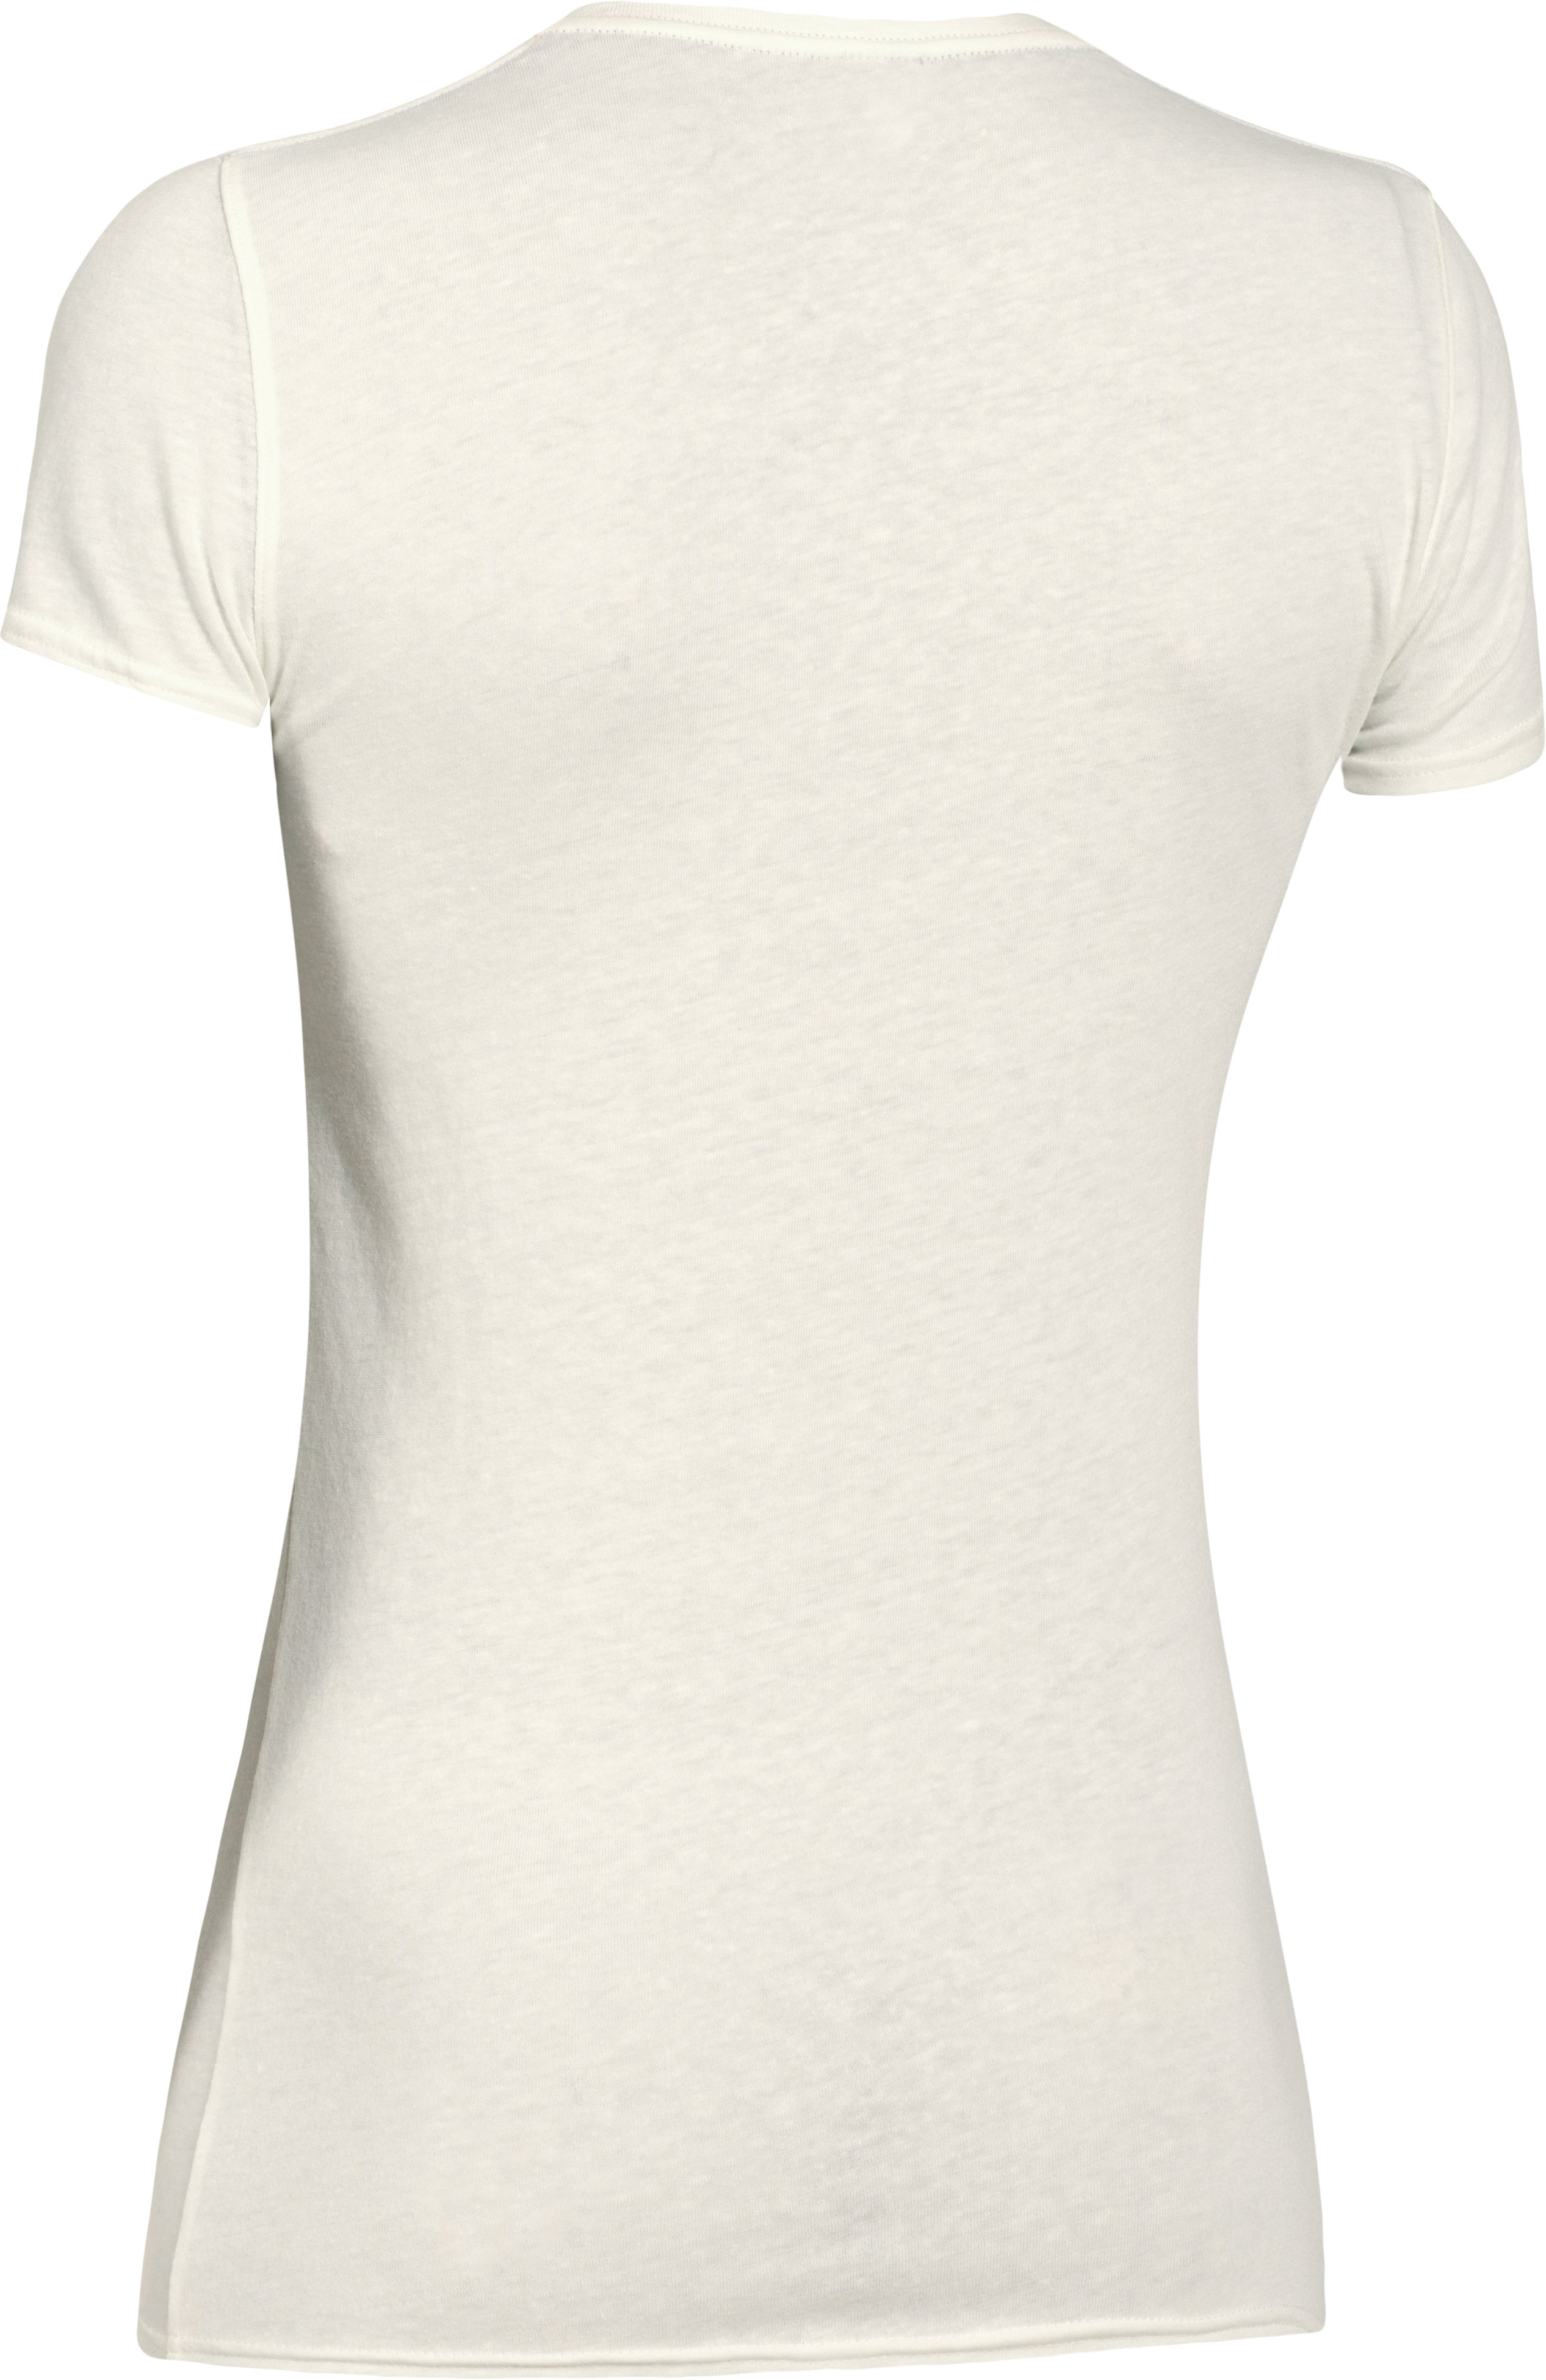 Women's Charged Cotton® Undeniable T-Shirt, Ivory, undefined